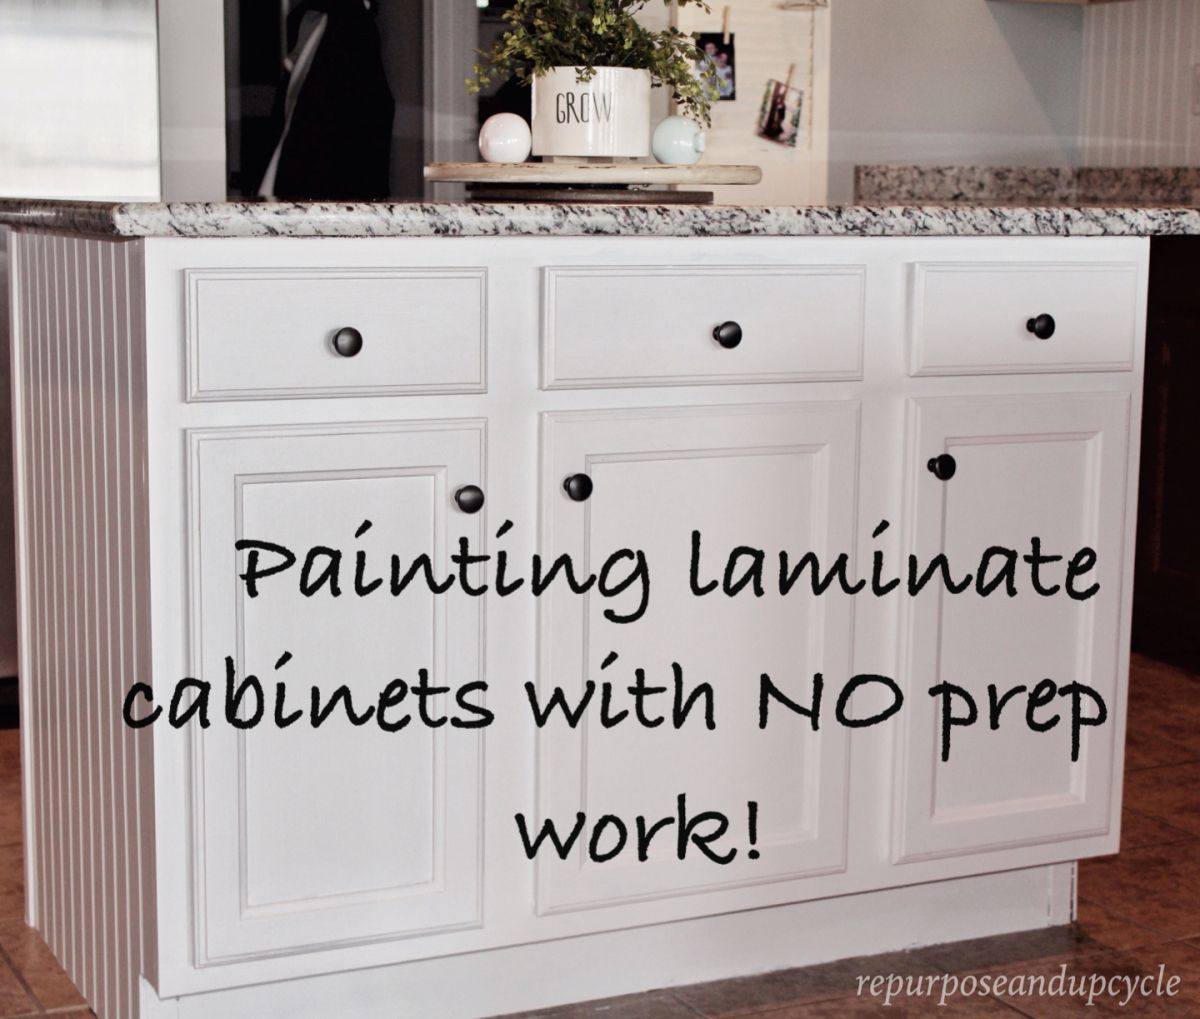 Painting Laminate Cabinets with No prep work | kitchen | Pinterest ...